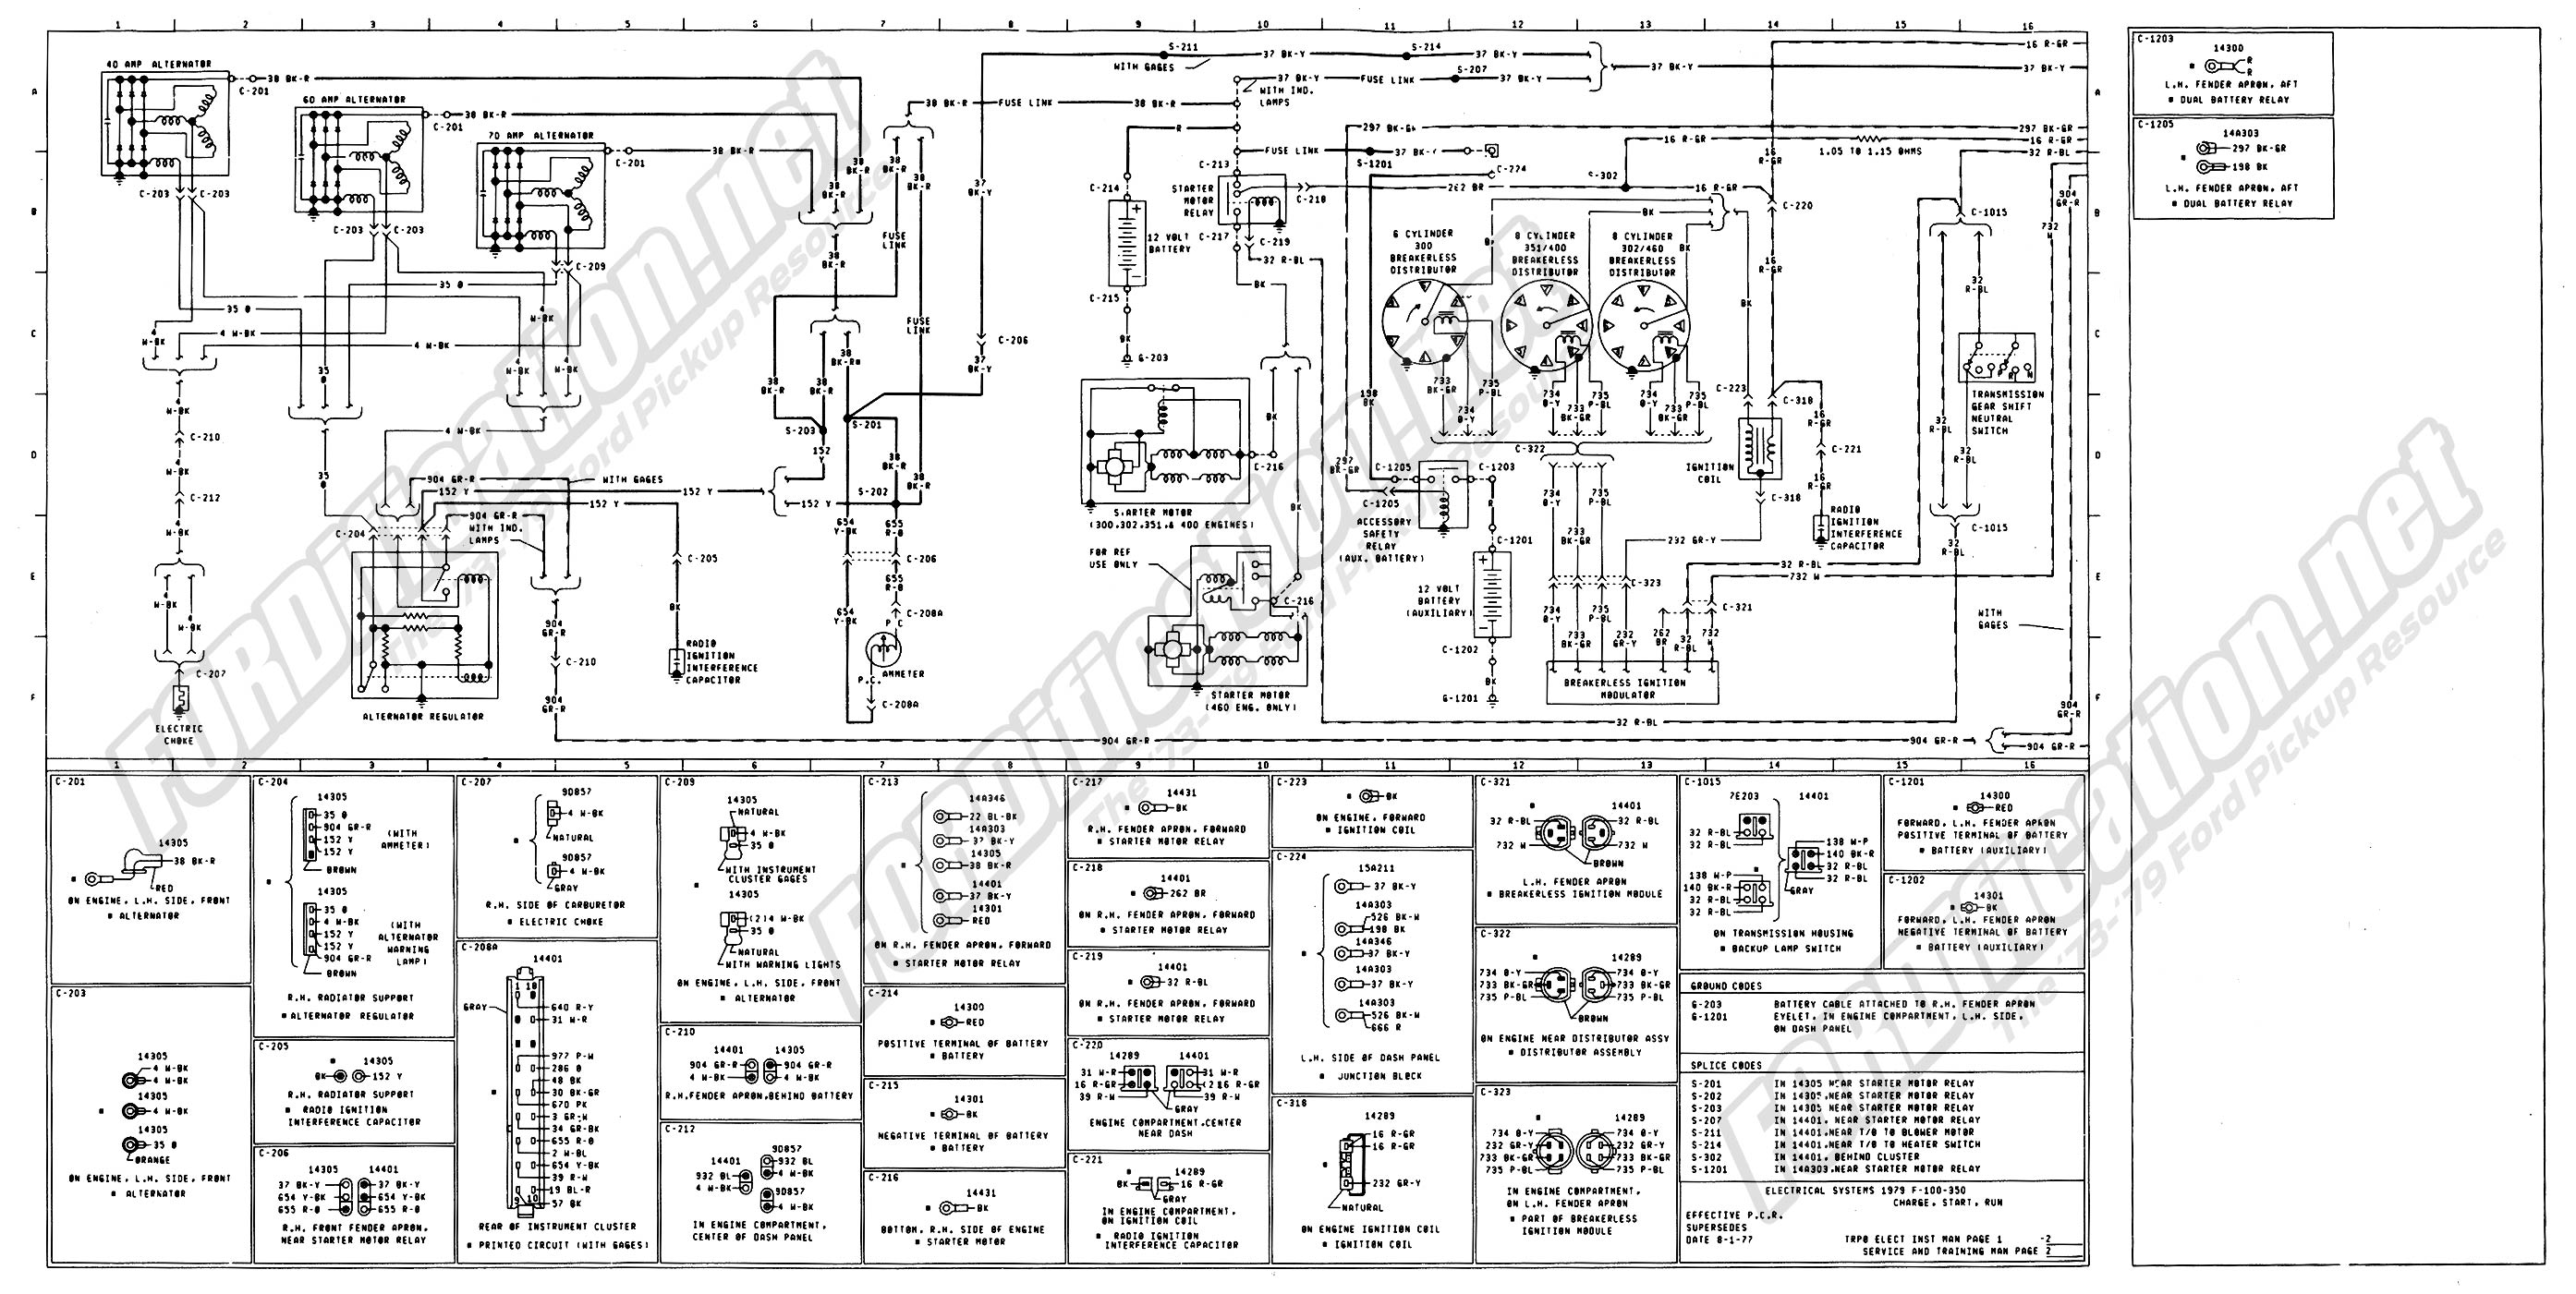 wiring_79master_2of9 1973 1979 ford truck wiring diagrams & schematics fordification net 1975 ford courier wiring diagram at n-0.co